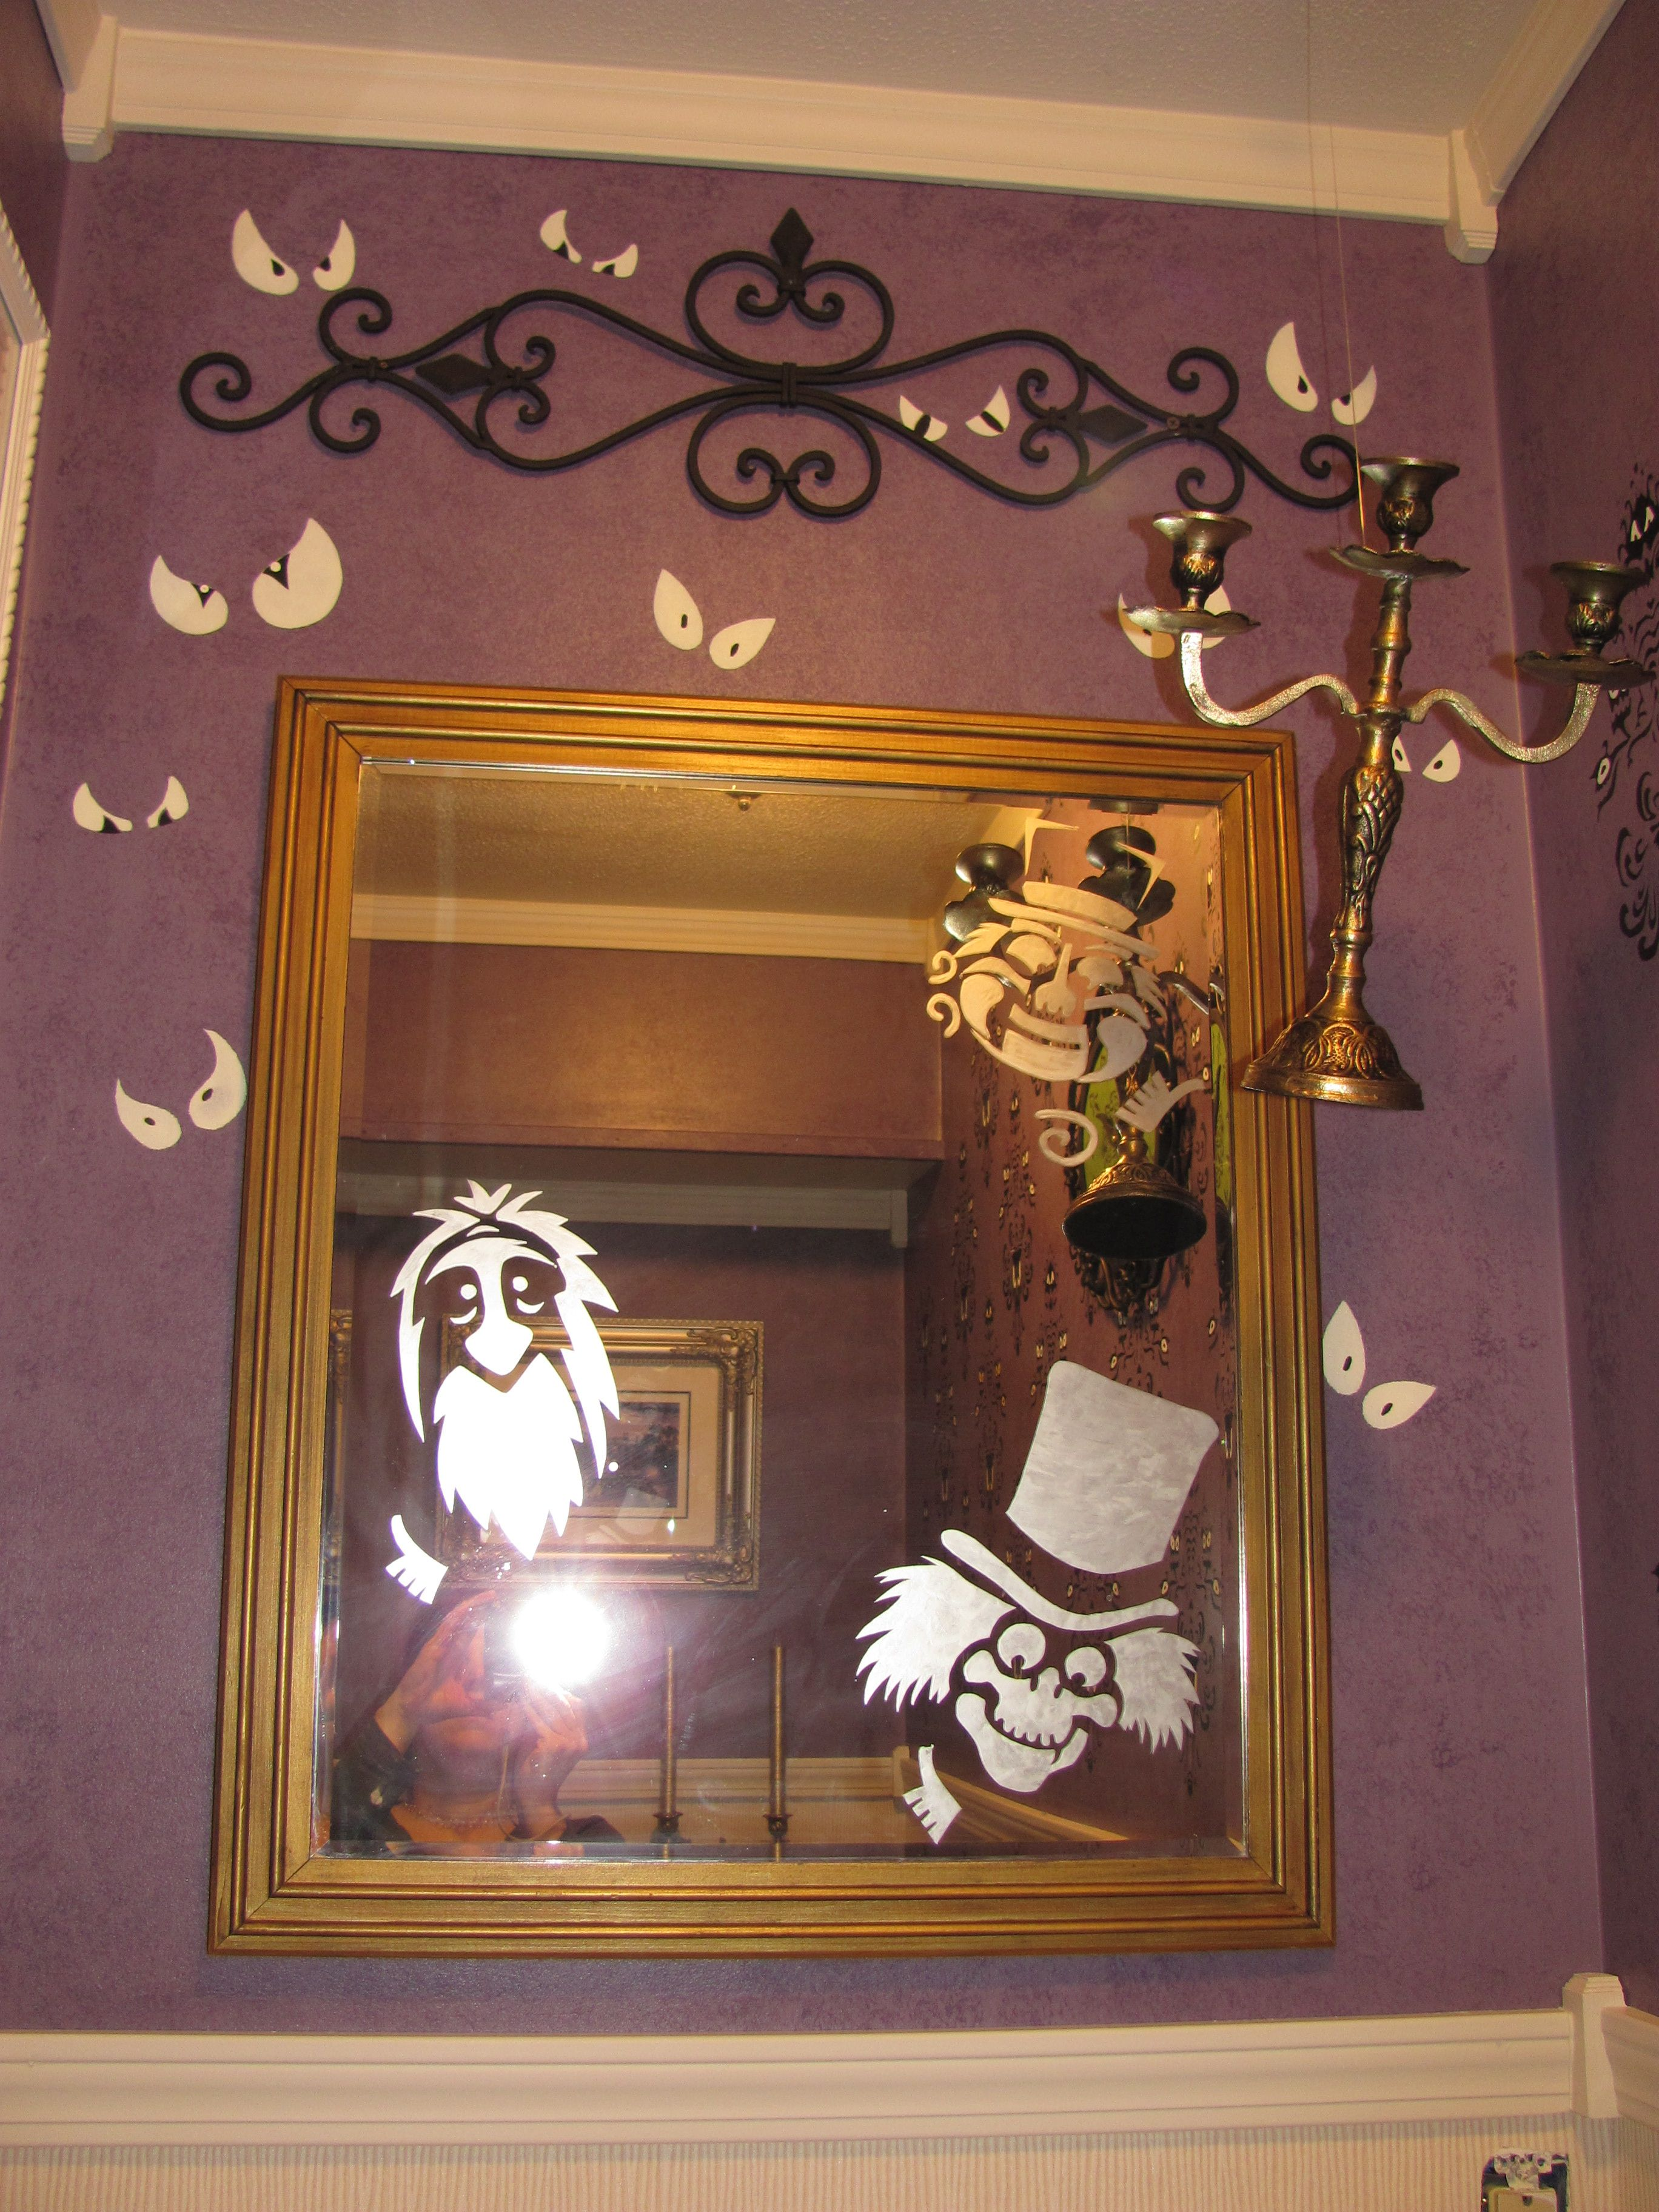 My Haunted Mansion Bathroom I Frosted Ghosts Onto The Mirror They Re Always Looking At You Haunted Mansion Decor Haunted Mansion Halloween Disney Home Decor